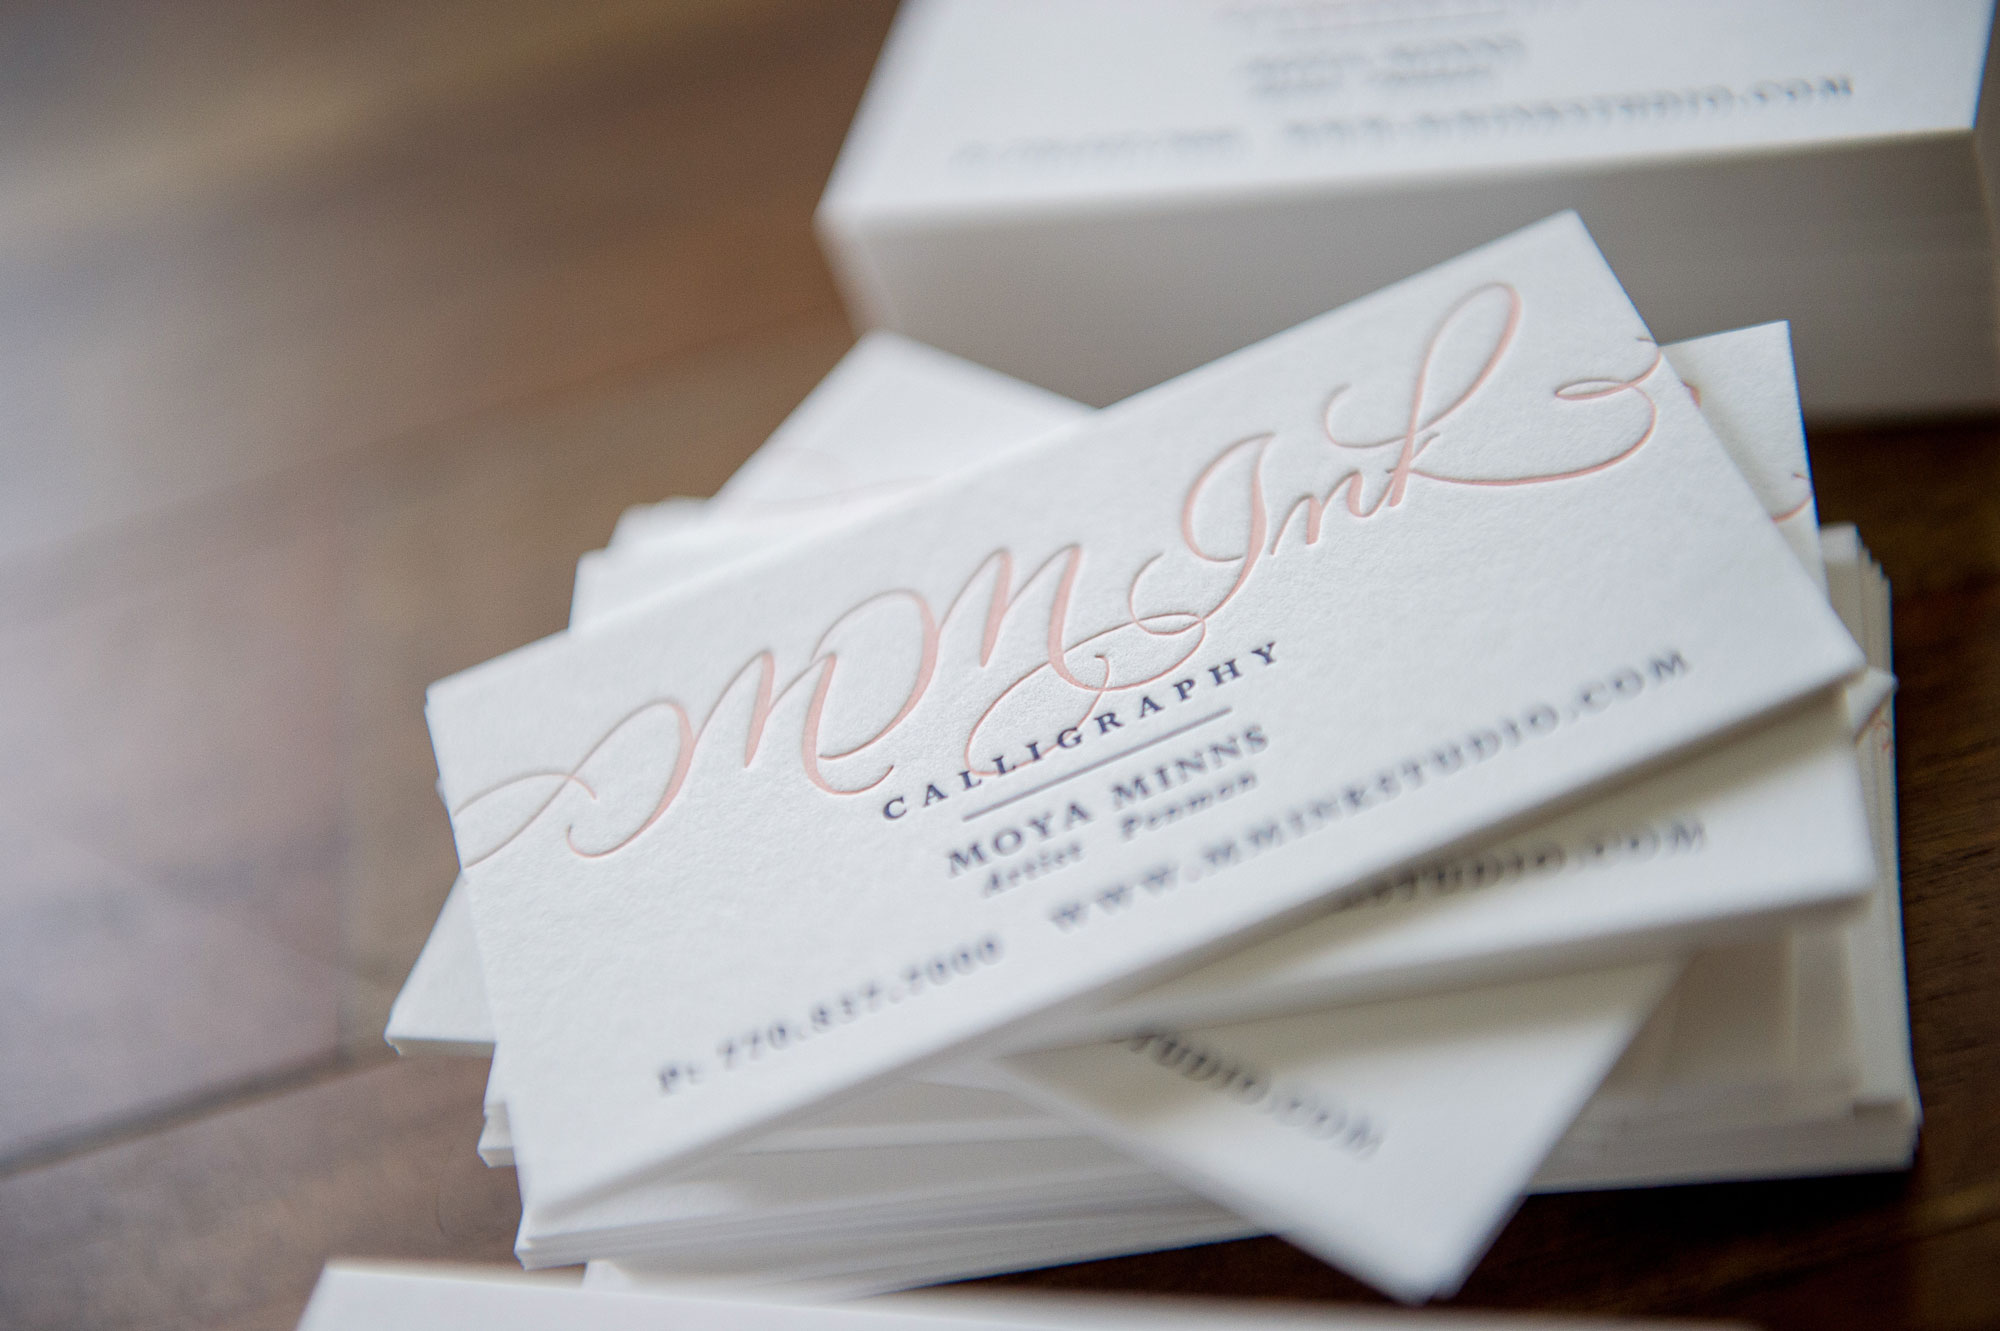 MM Ink Calligraphy, 2 color letterpress business card print on Crane Lettra 220# thick stock on a wooden background